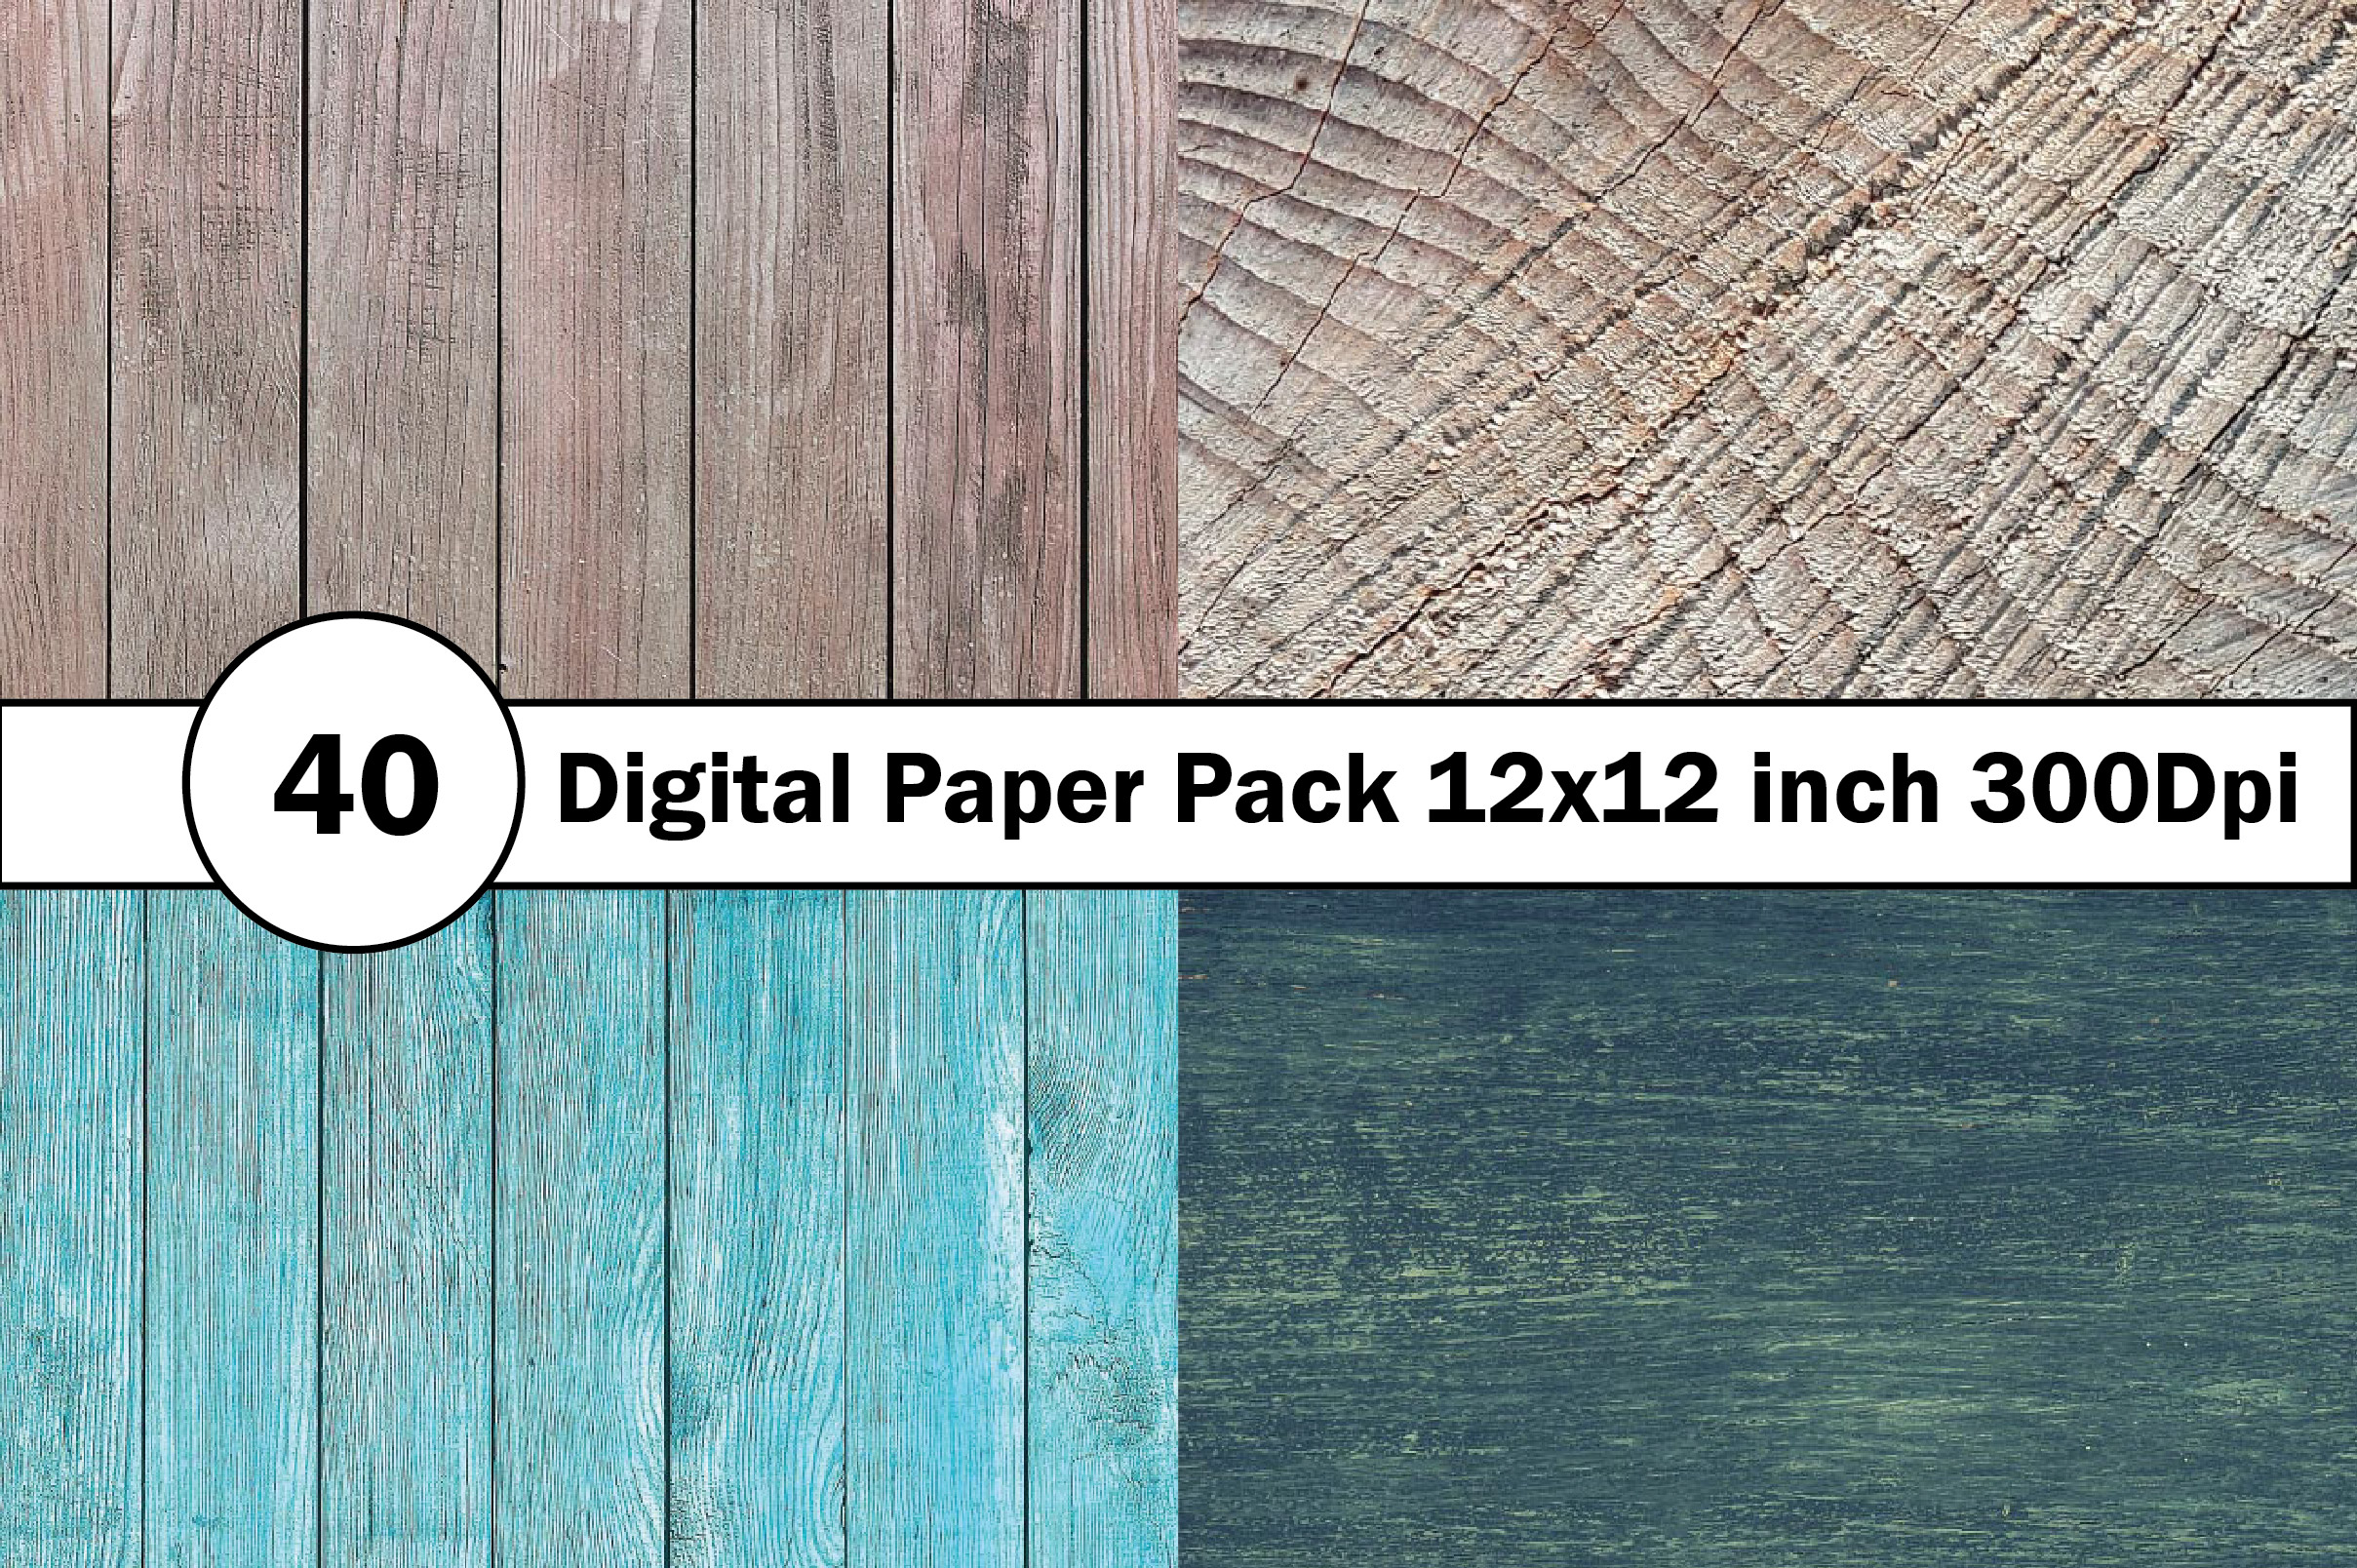 40 Digital Paper Pack 12x12 inch 300 Dpi example image 2